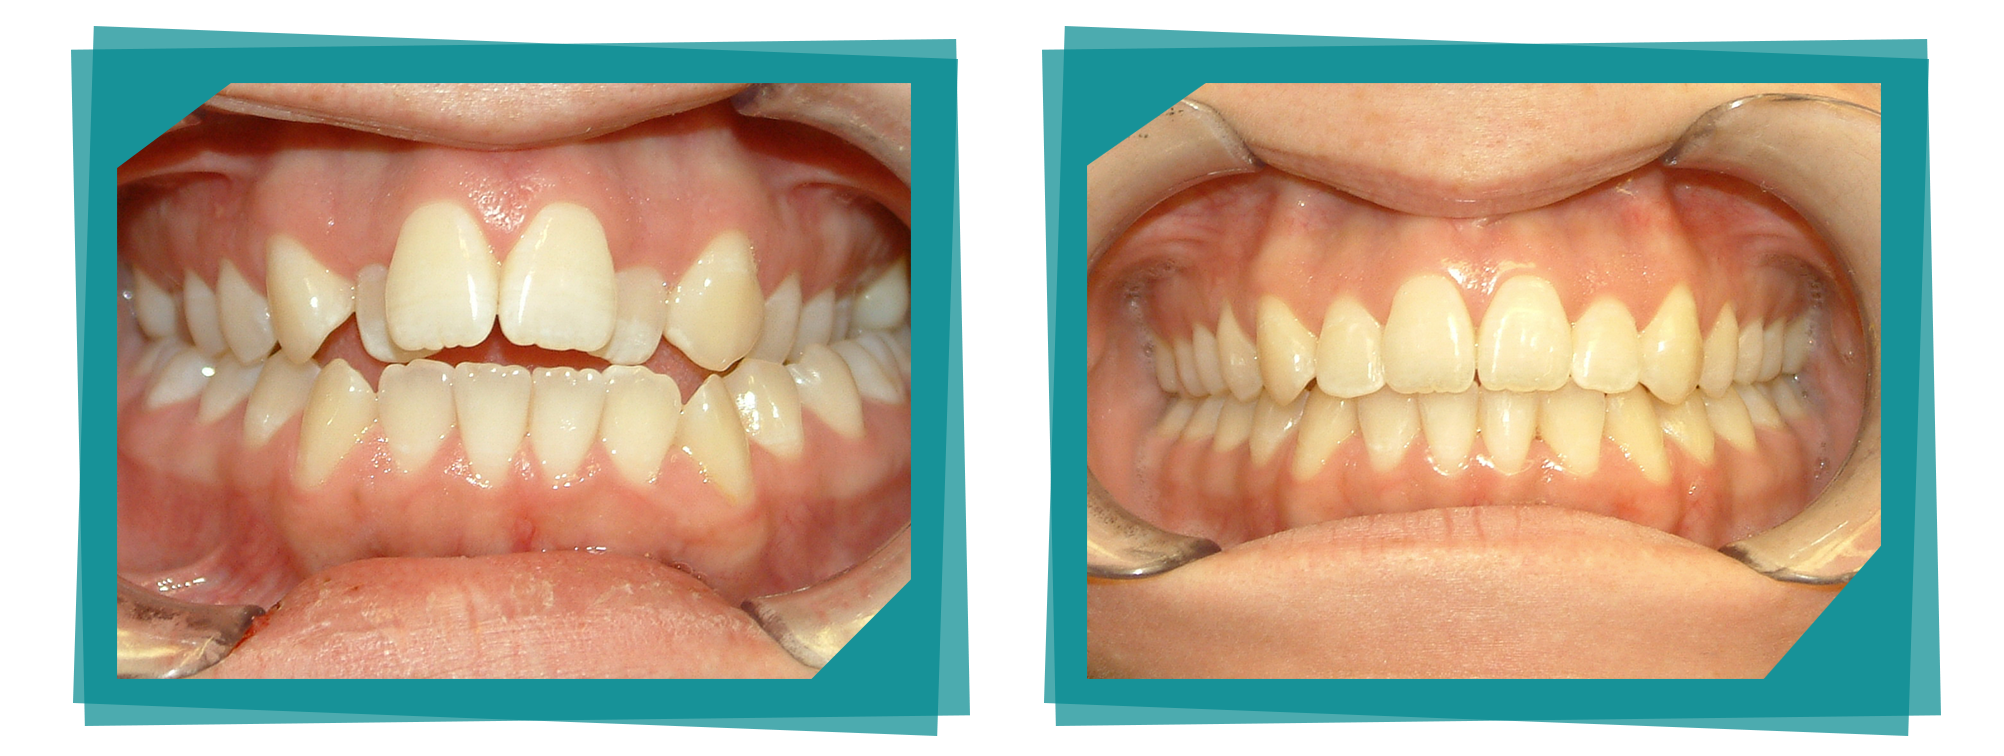 Parkcrest Dental Group teeth whitening before and after.